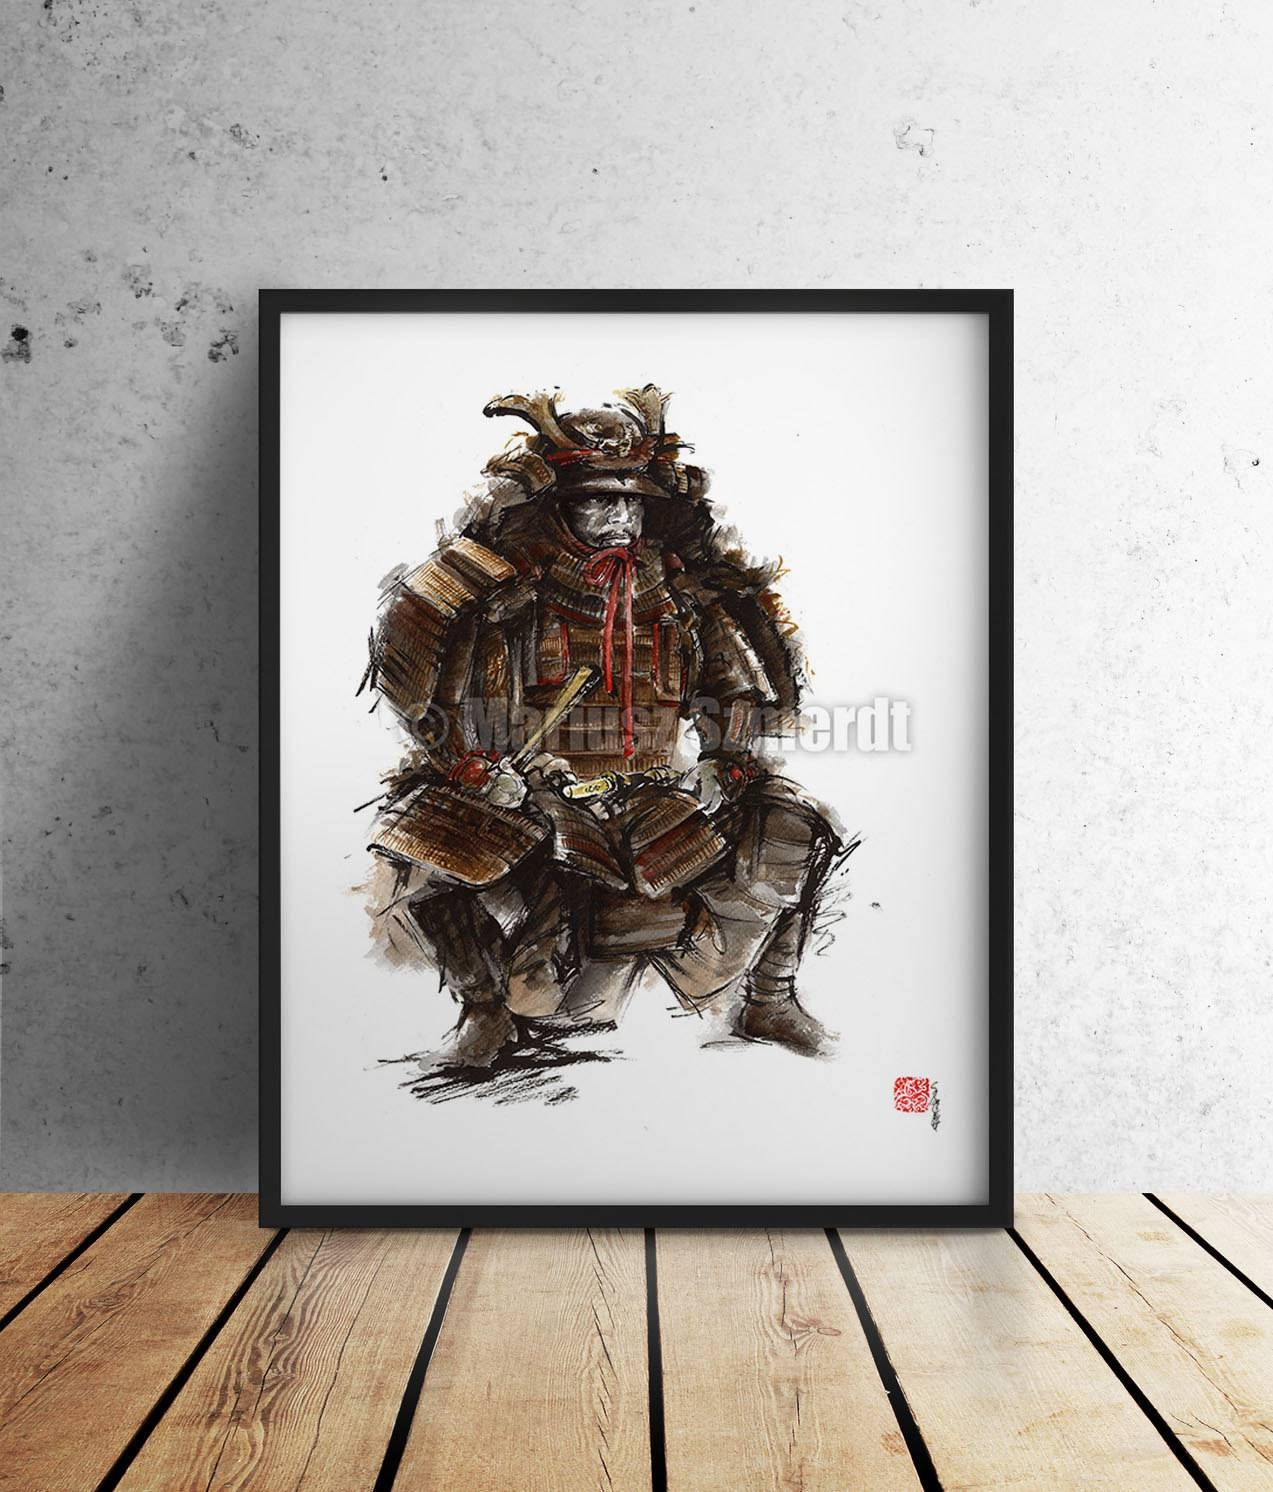 Samurai Japanese Painting Art Warrior Armor Artwork Japanese Pertaining To Most Up To Date Samurai Wall Art (View 18 of 20)